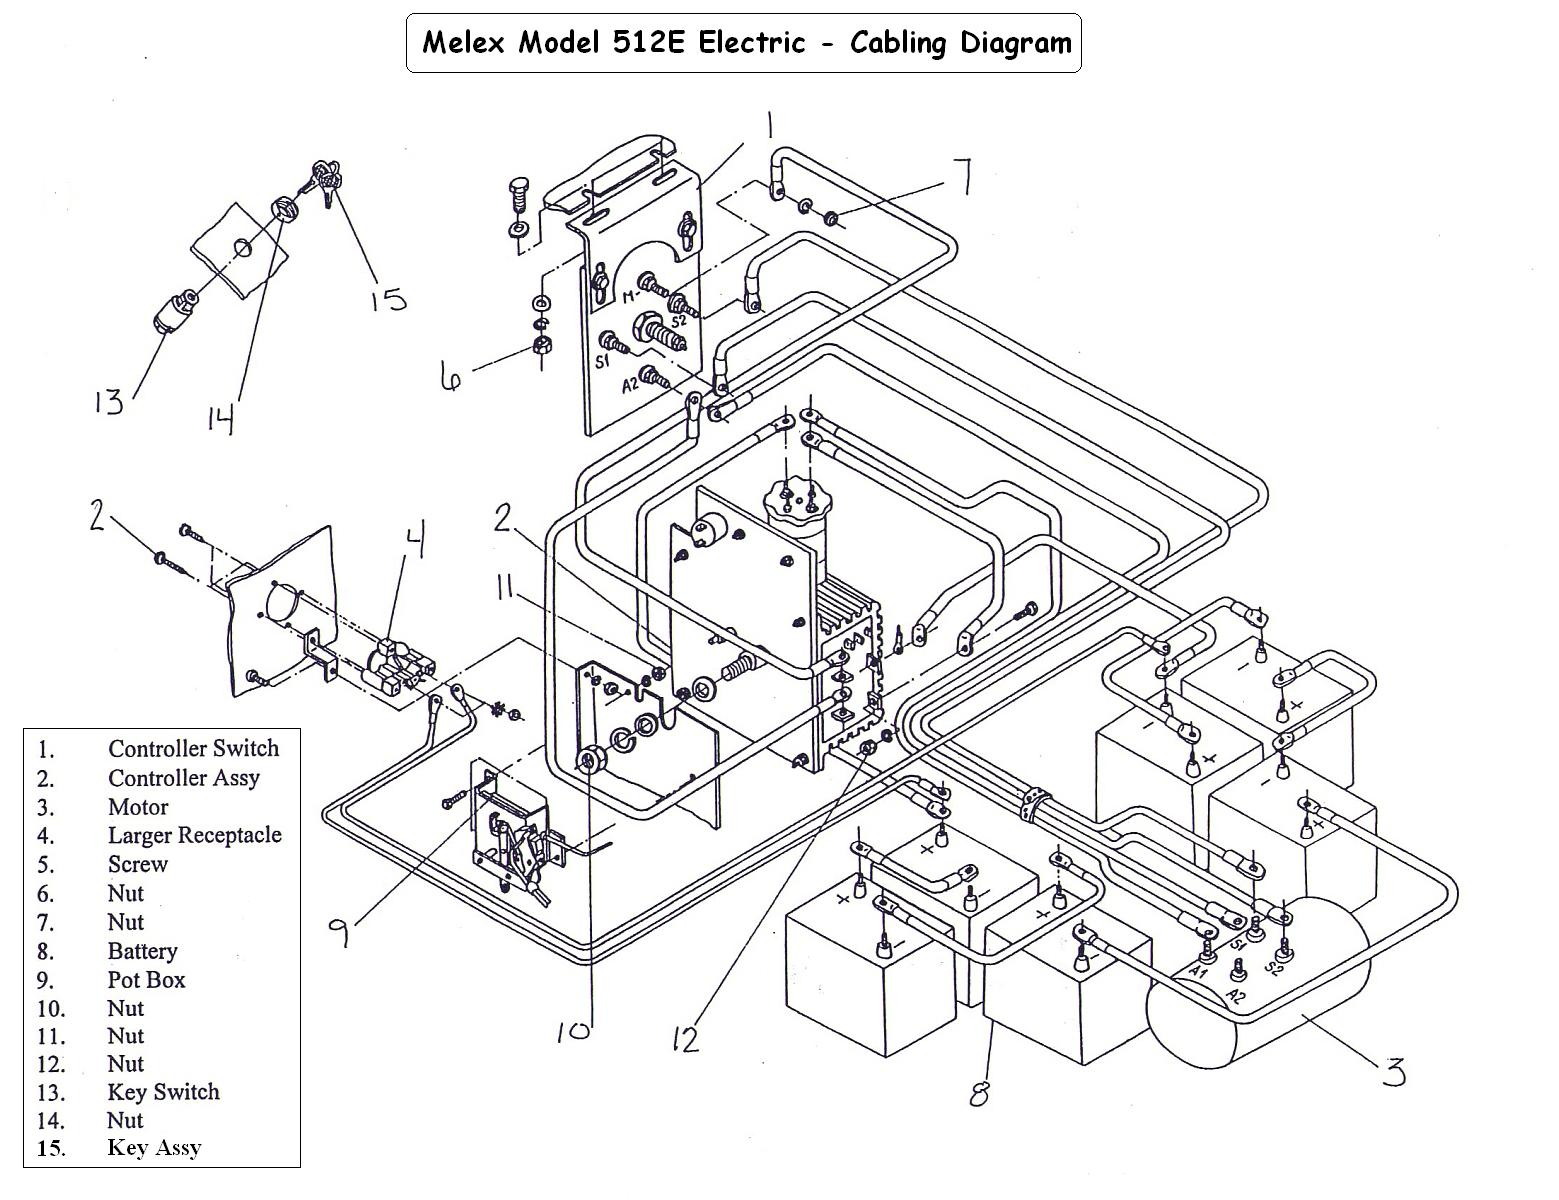 hight resolution of wiring diagram for melex 512 golf cart circuit diagram wiring melex 512e wiring diagram melex